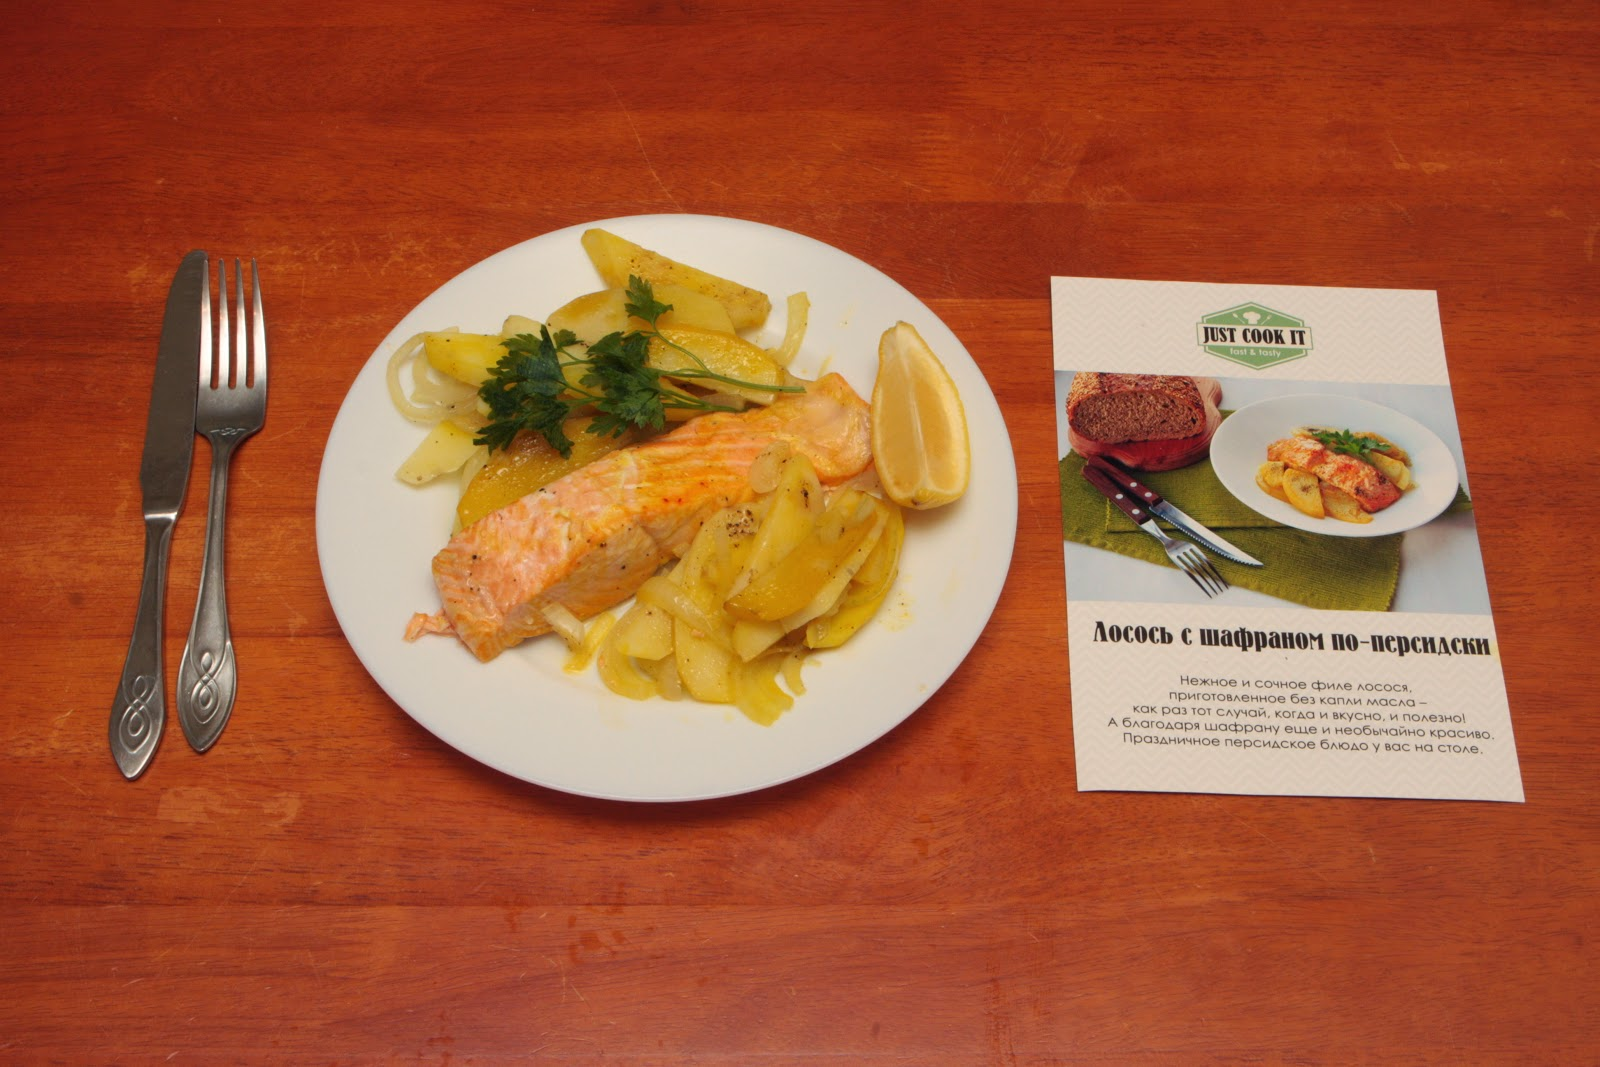 Salmon with saffron from Just Cook It